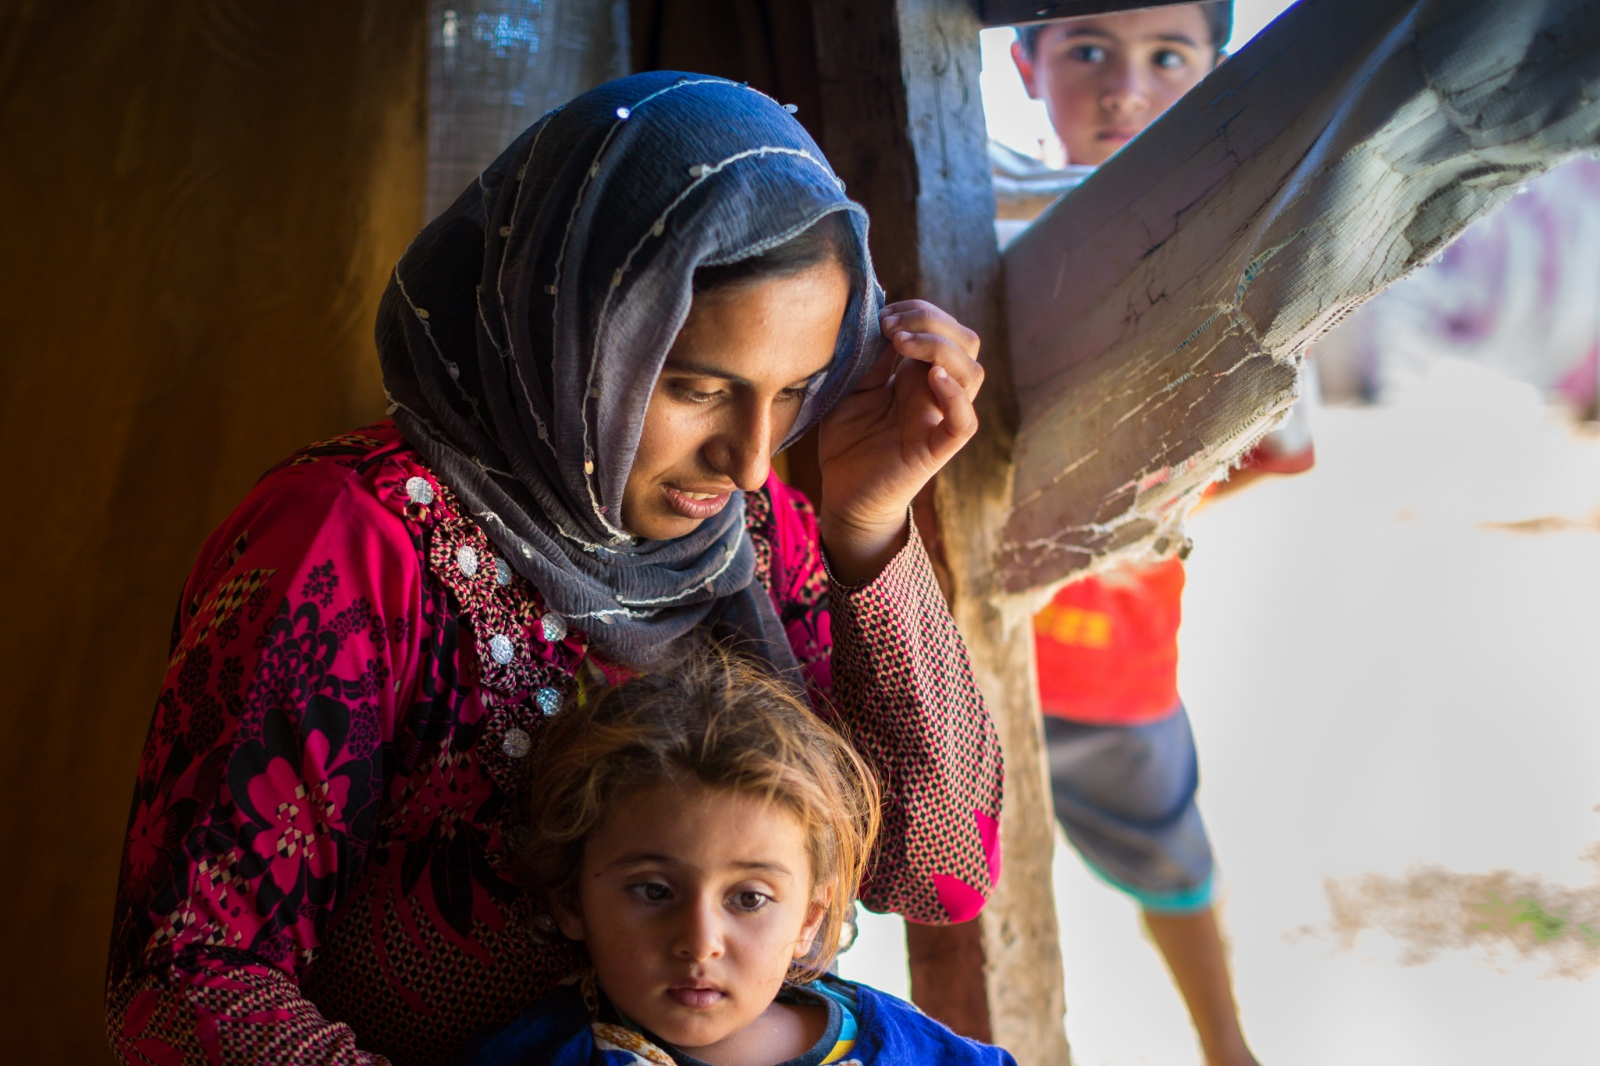 Bekaa Valley, LEBANON, September 5, 2014: Fadile (35) is mother of eight children; six girls and two boys. Most of the refugees living in Lebanon's makeshift shelters are women and children.